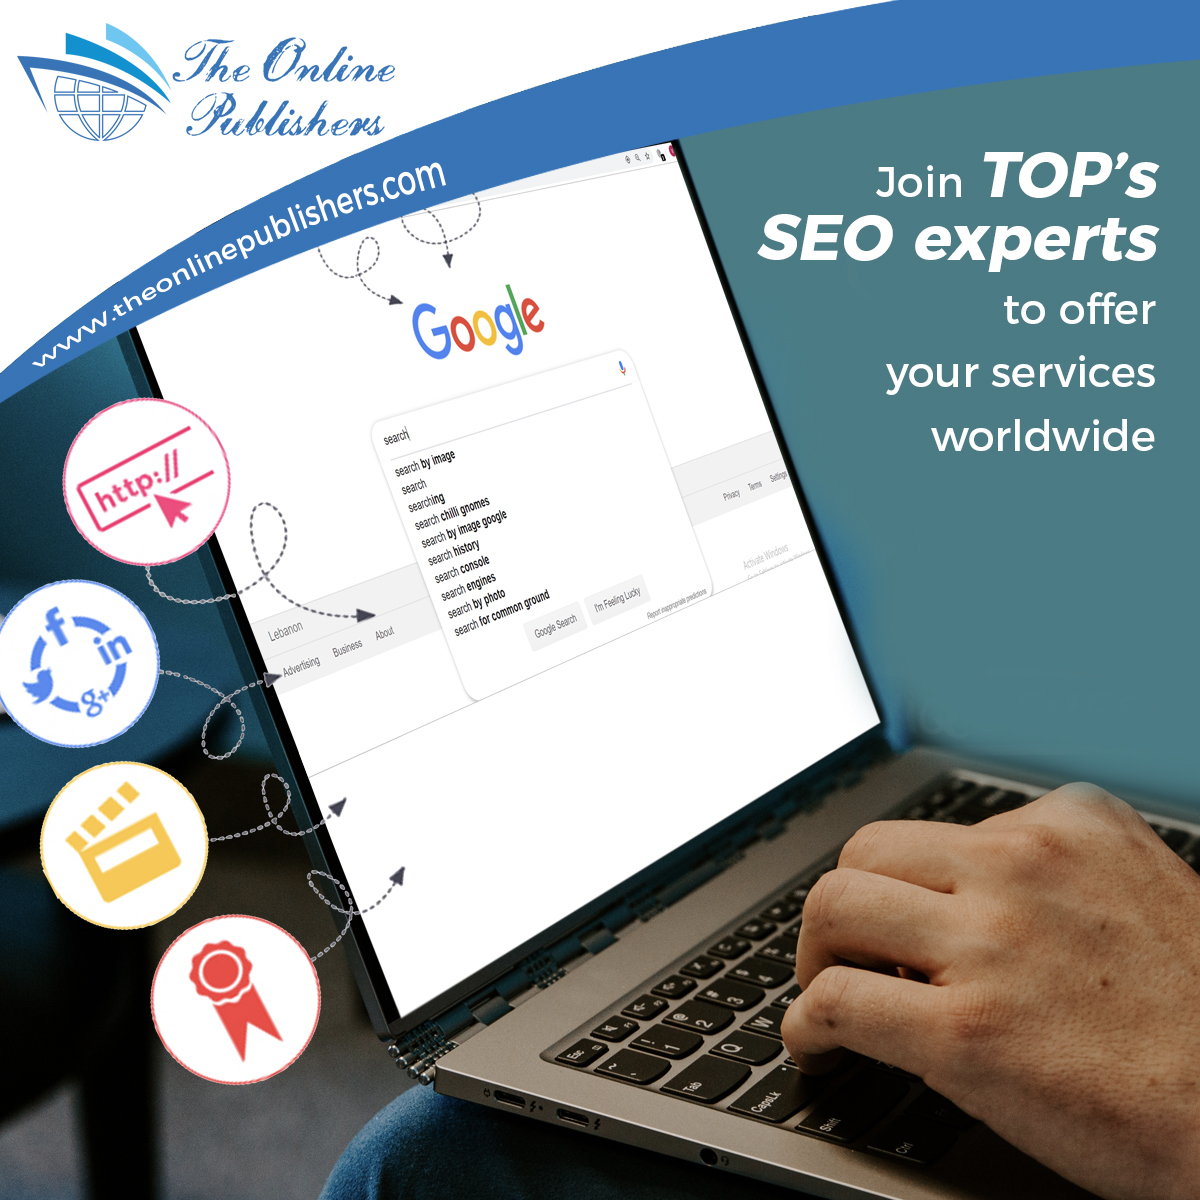 What Do SEO Experts Actually Do?